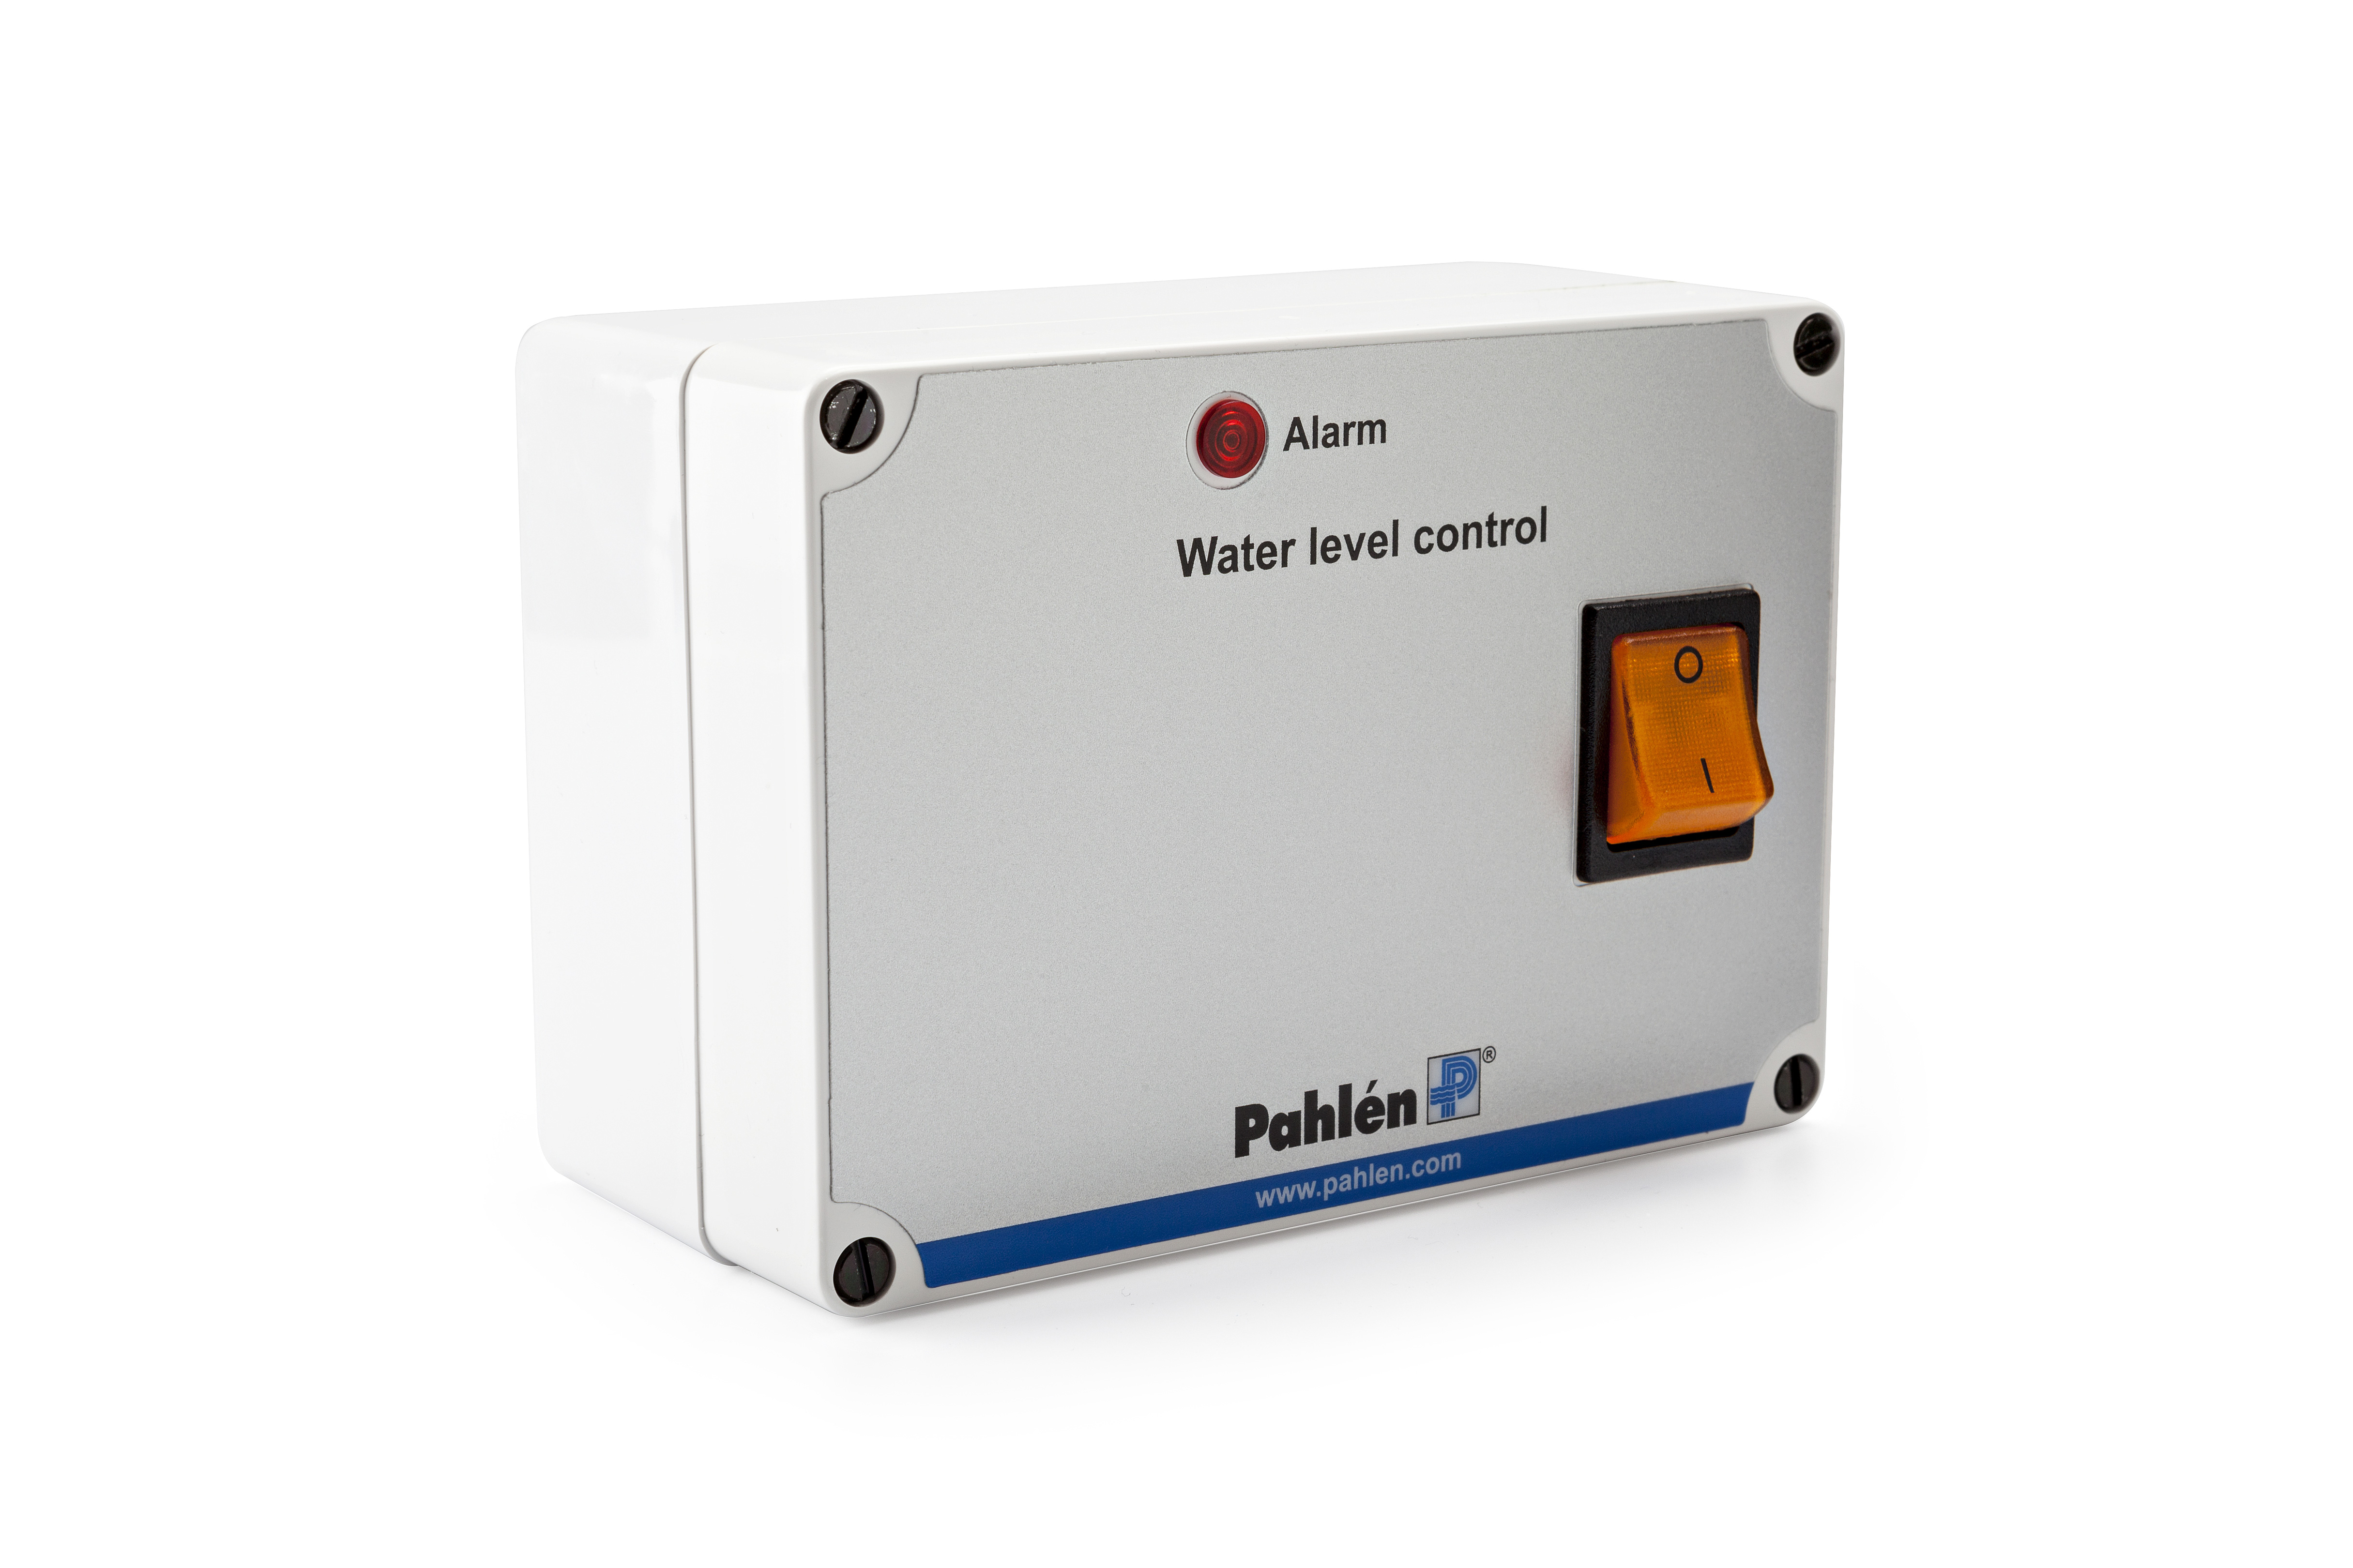 Water level control